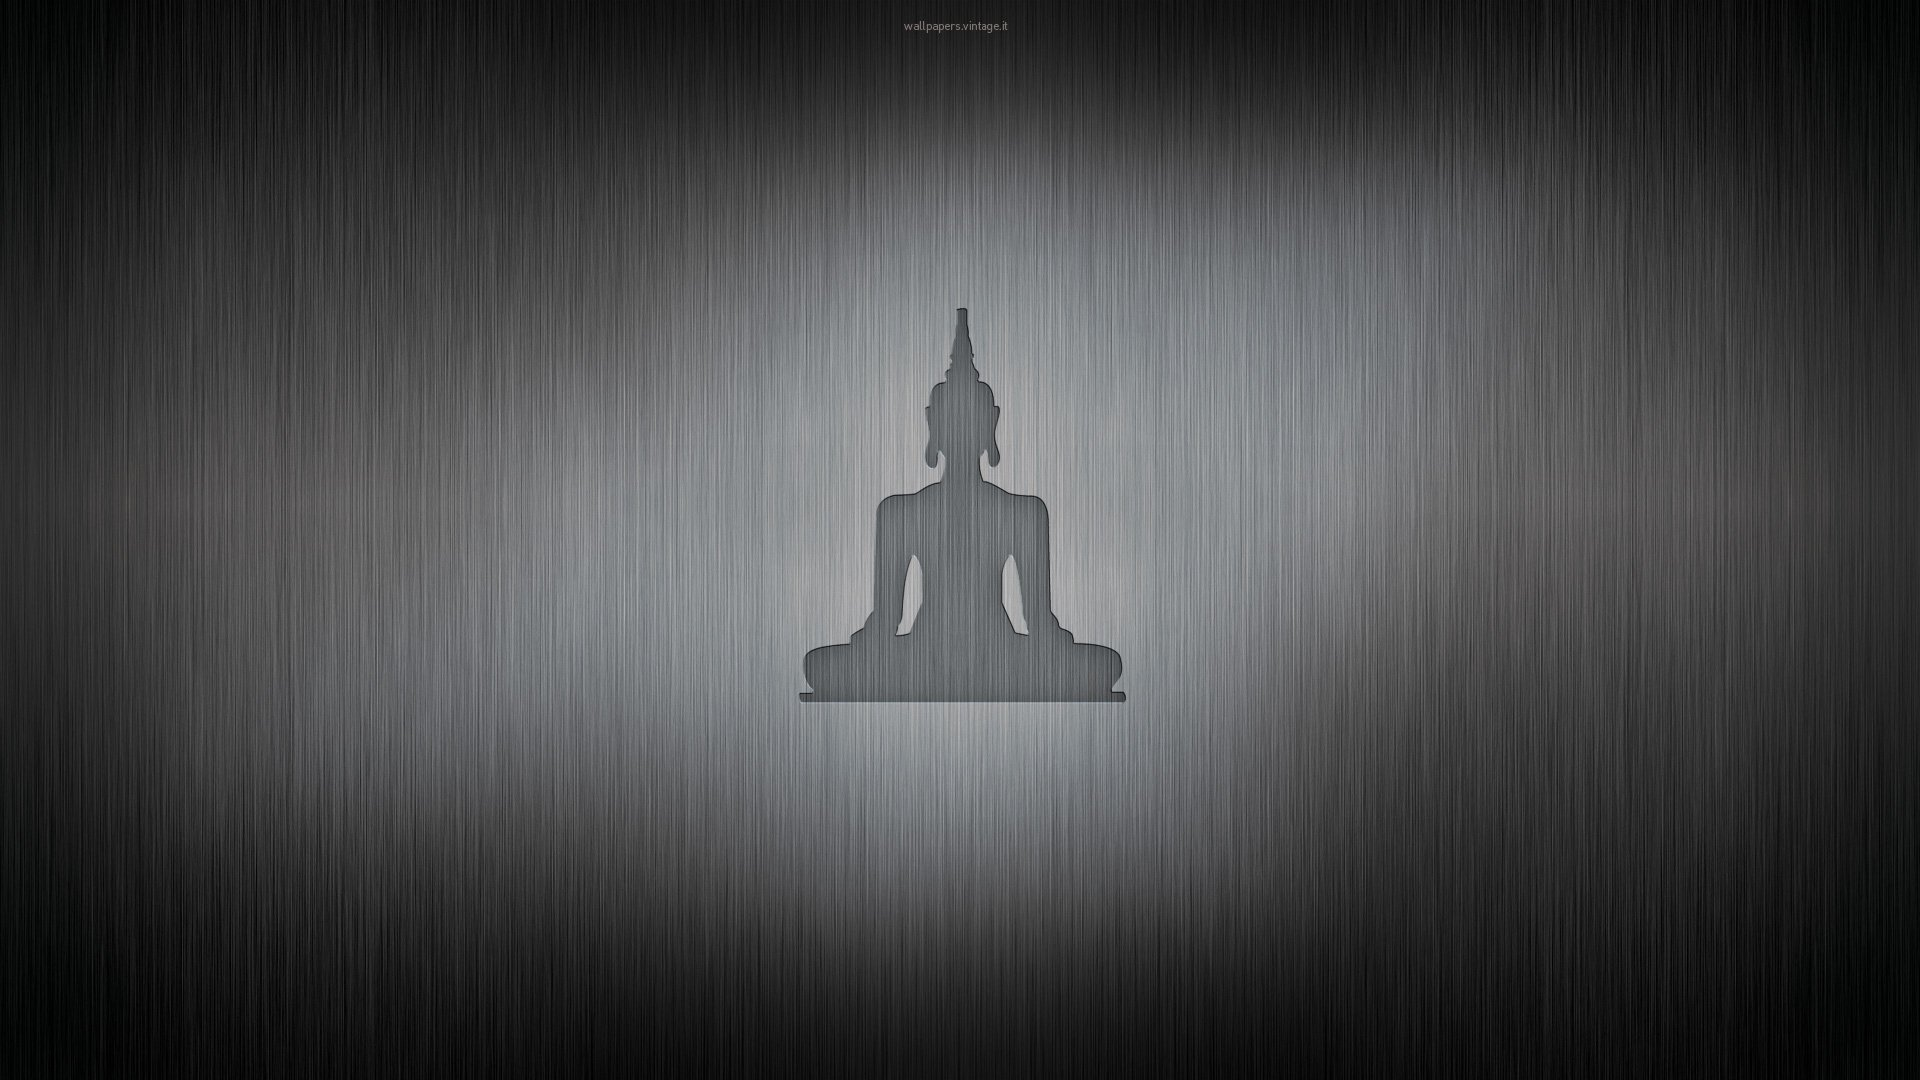 Buddha Wallpaper 1920x1080